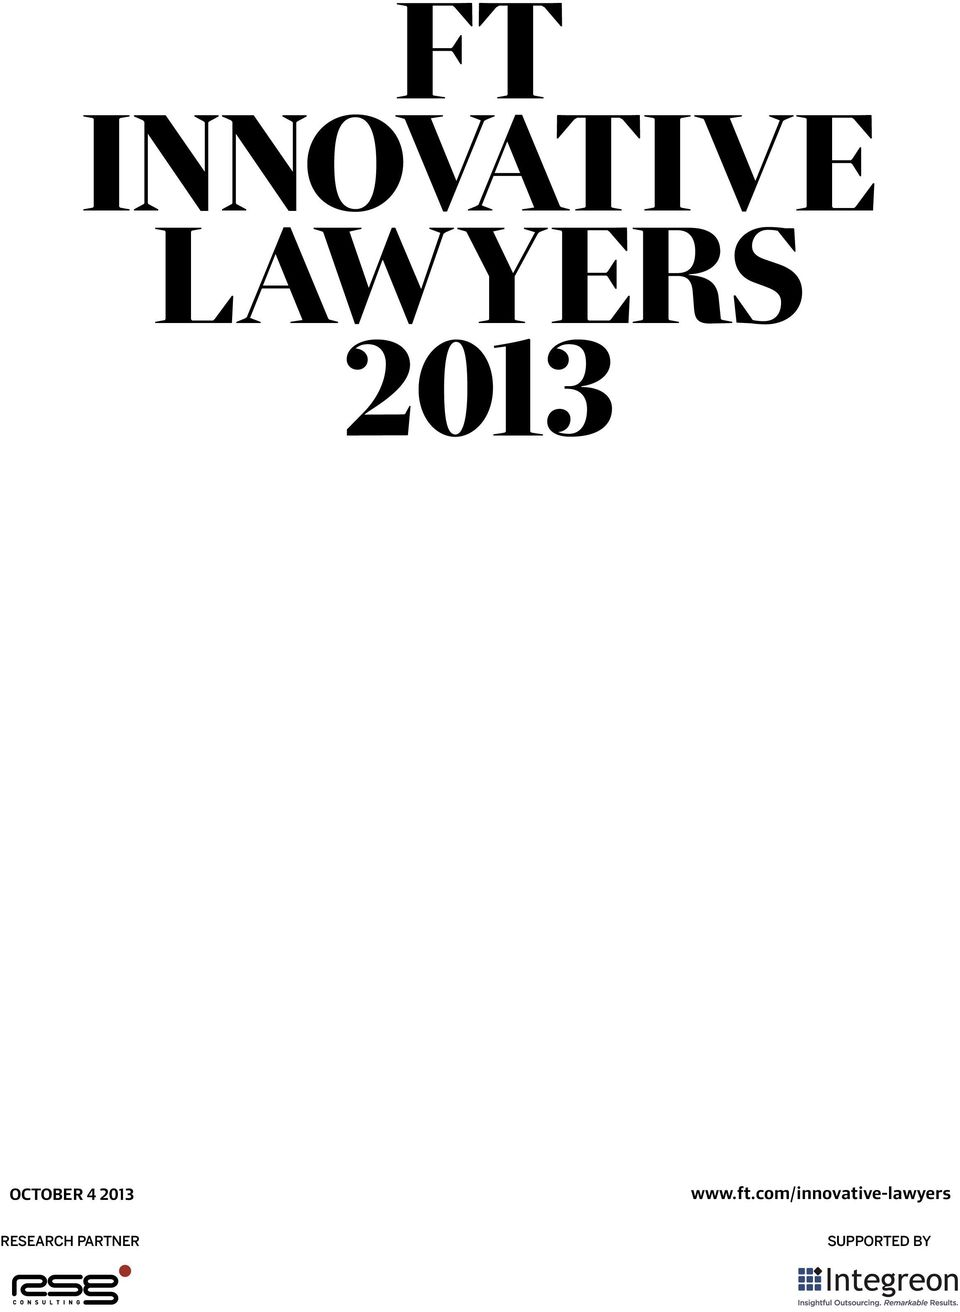 ft.com/innovative-lawyers